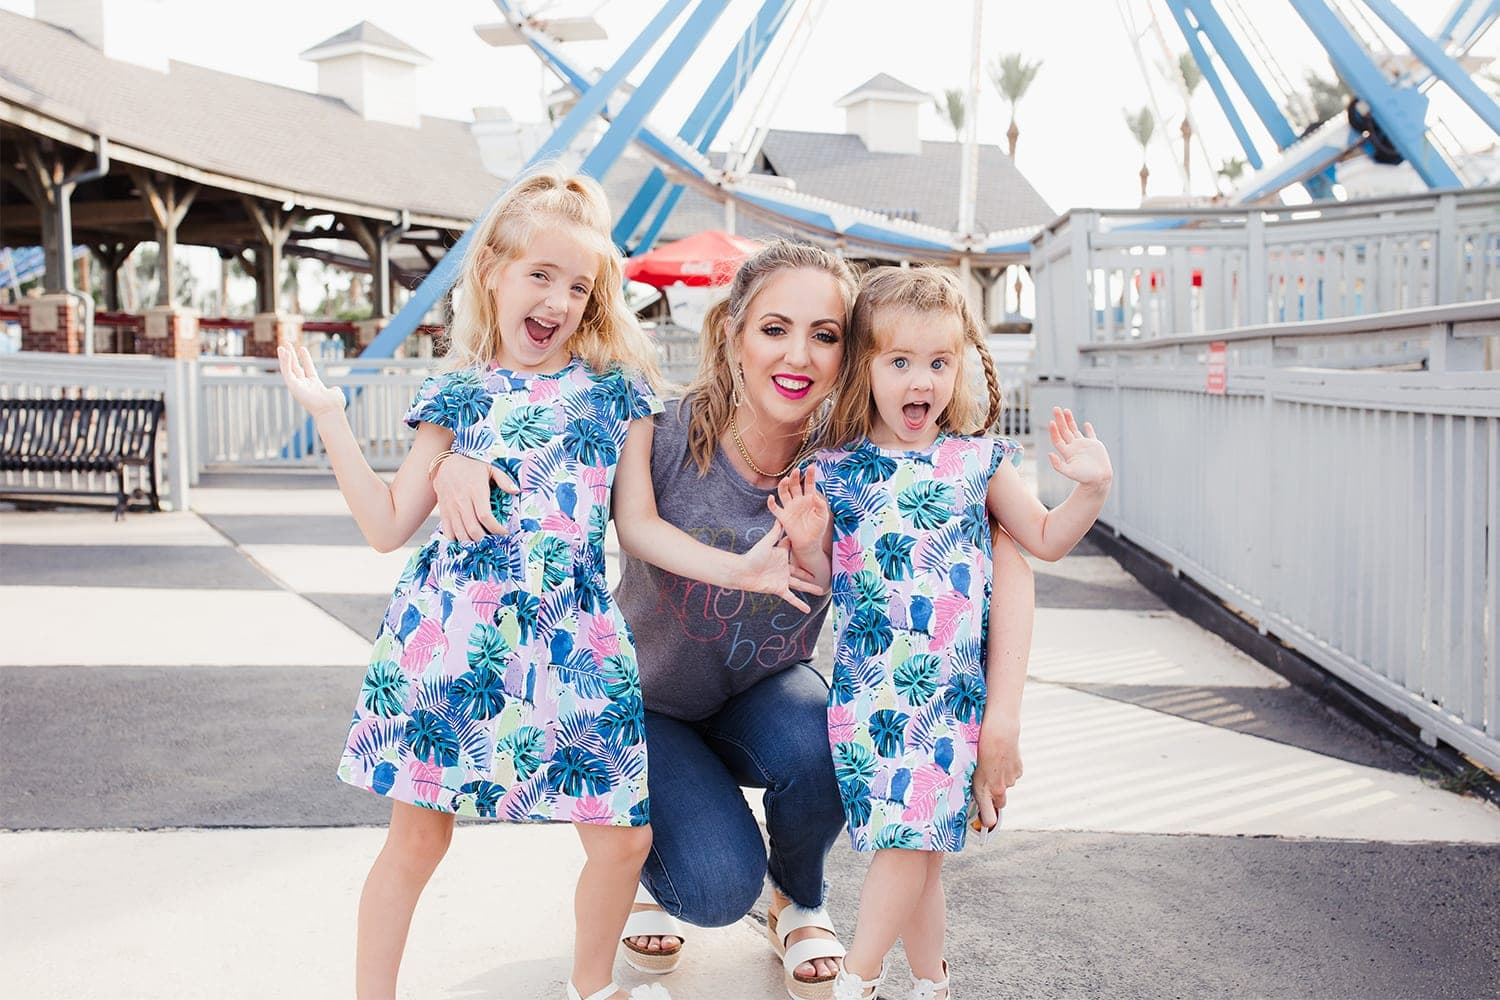 Houston mommy blogger Meg O. on the Go shares some cute mommy and daughter summer outfits